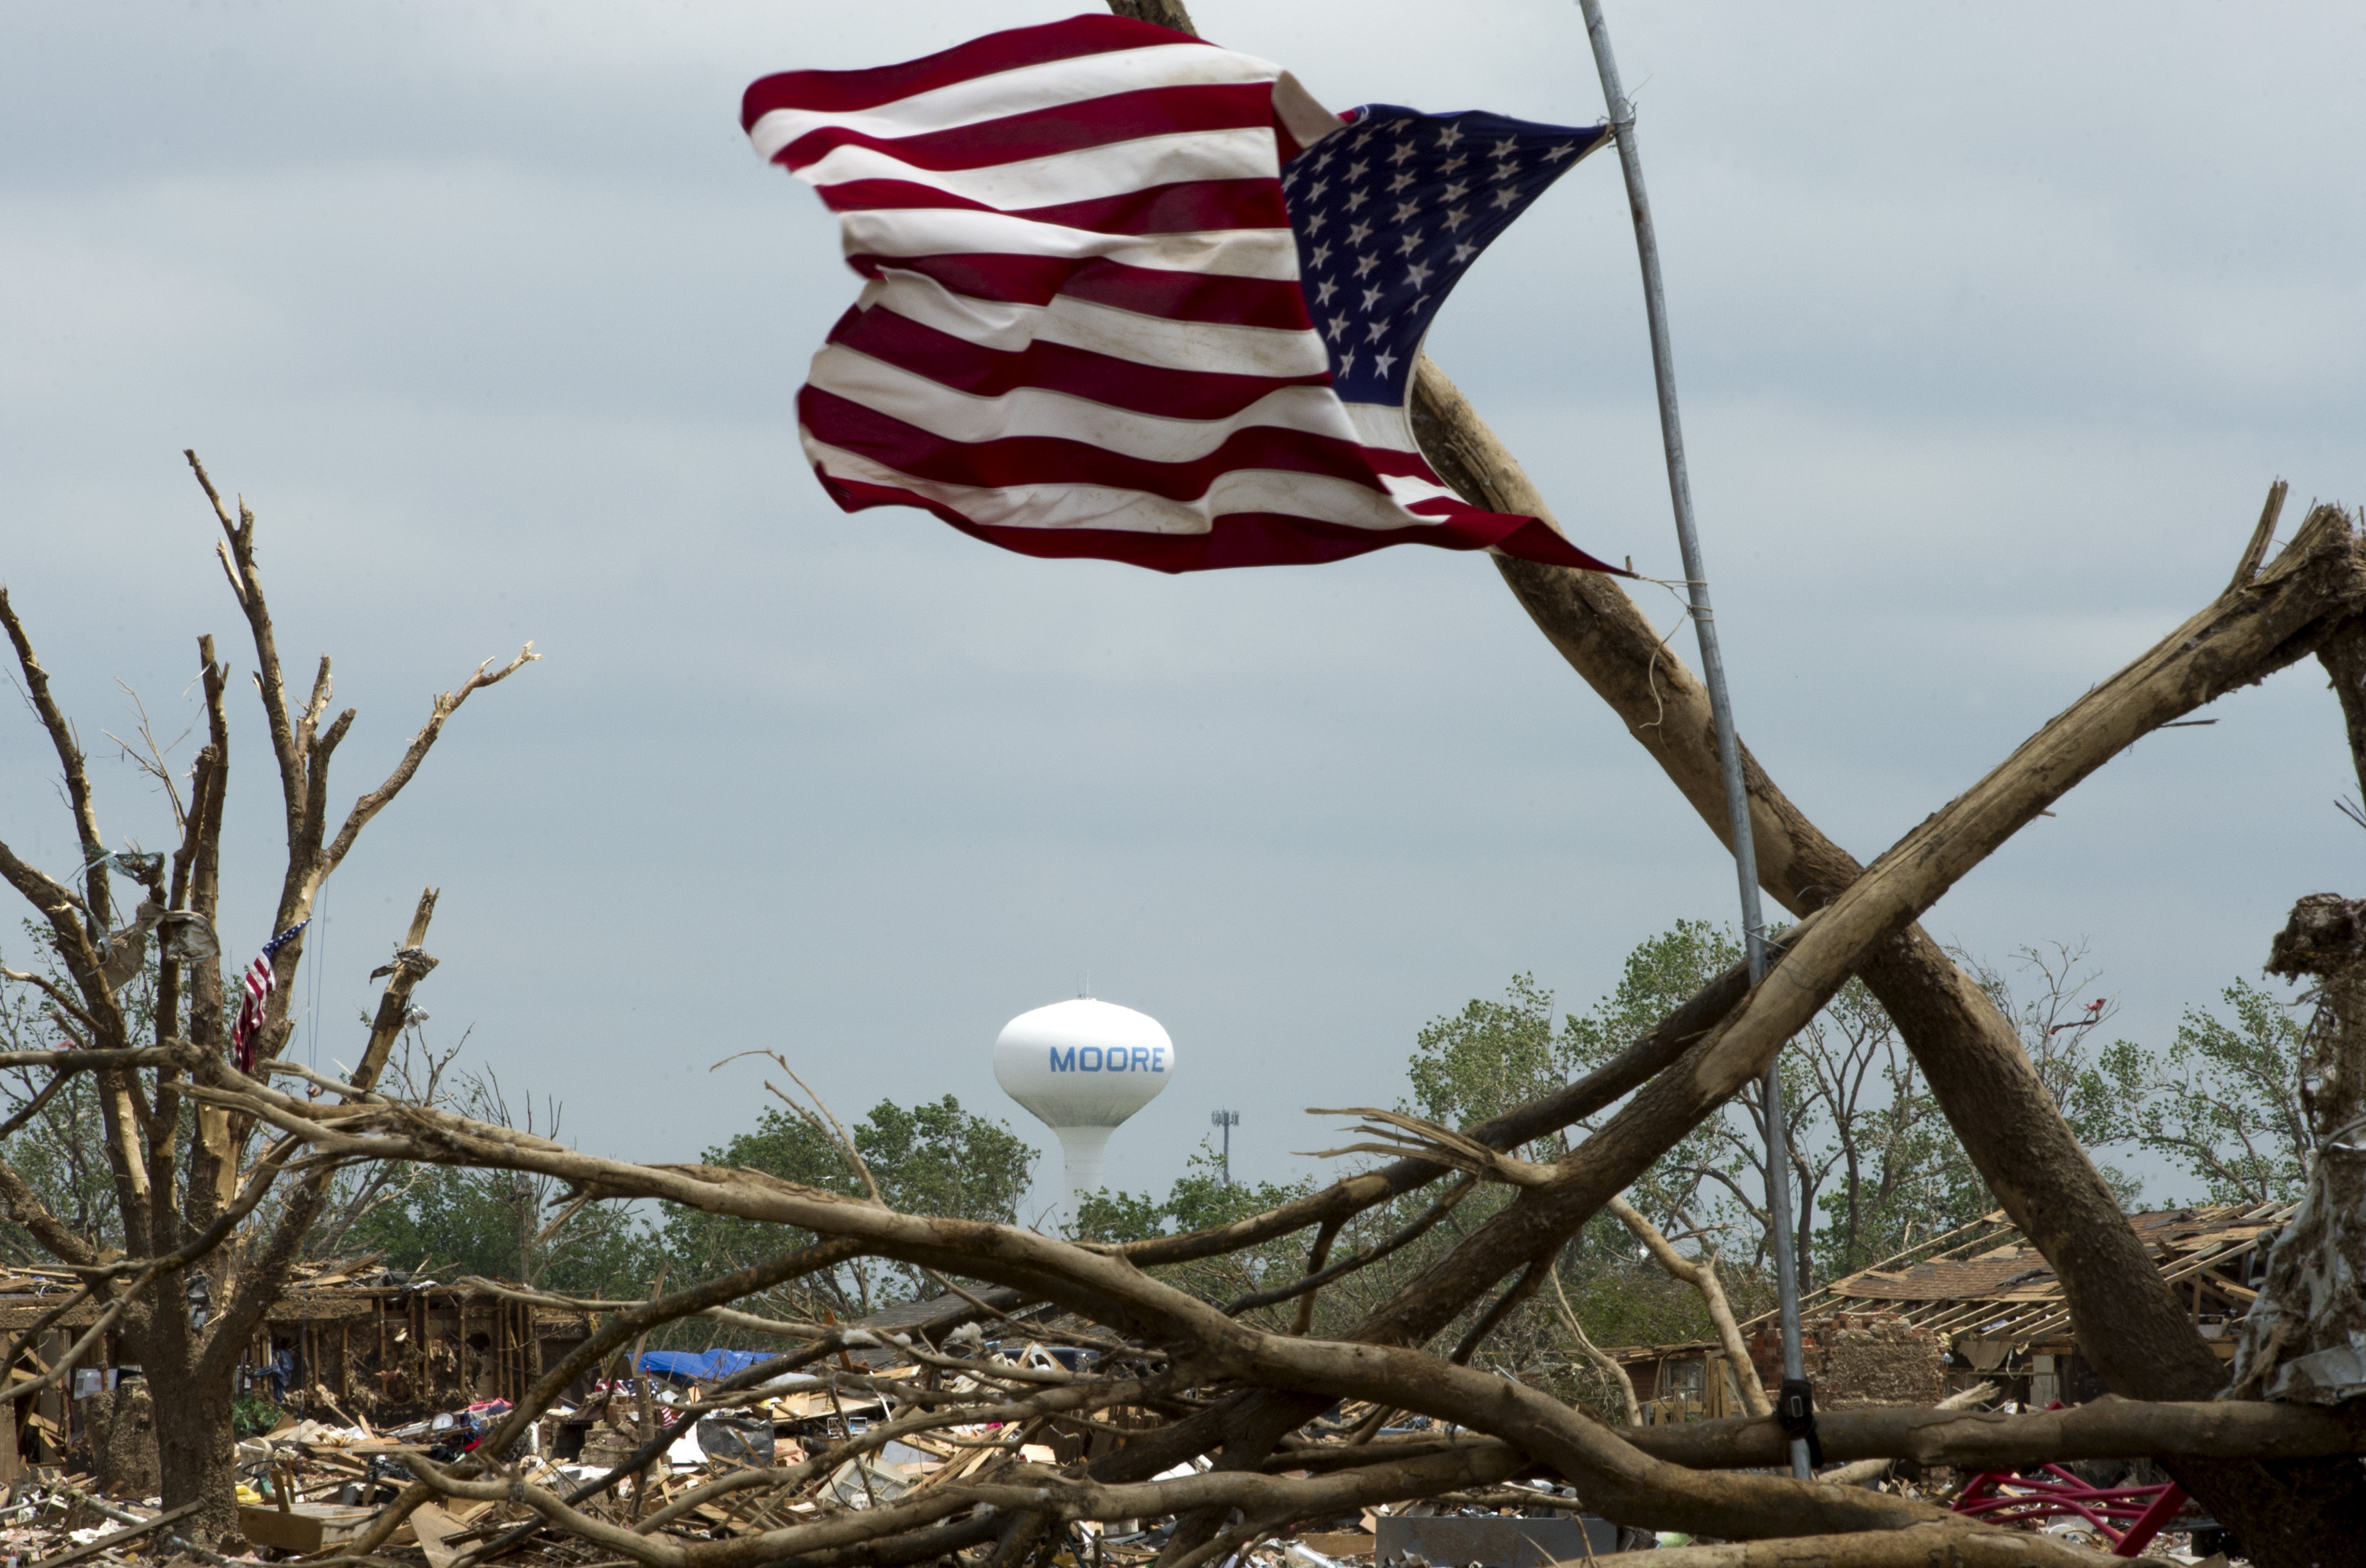 File:An American flag flies amid debris and wreckage in Moore ...